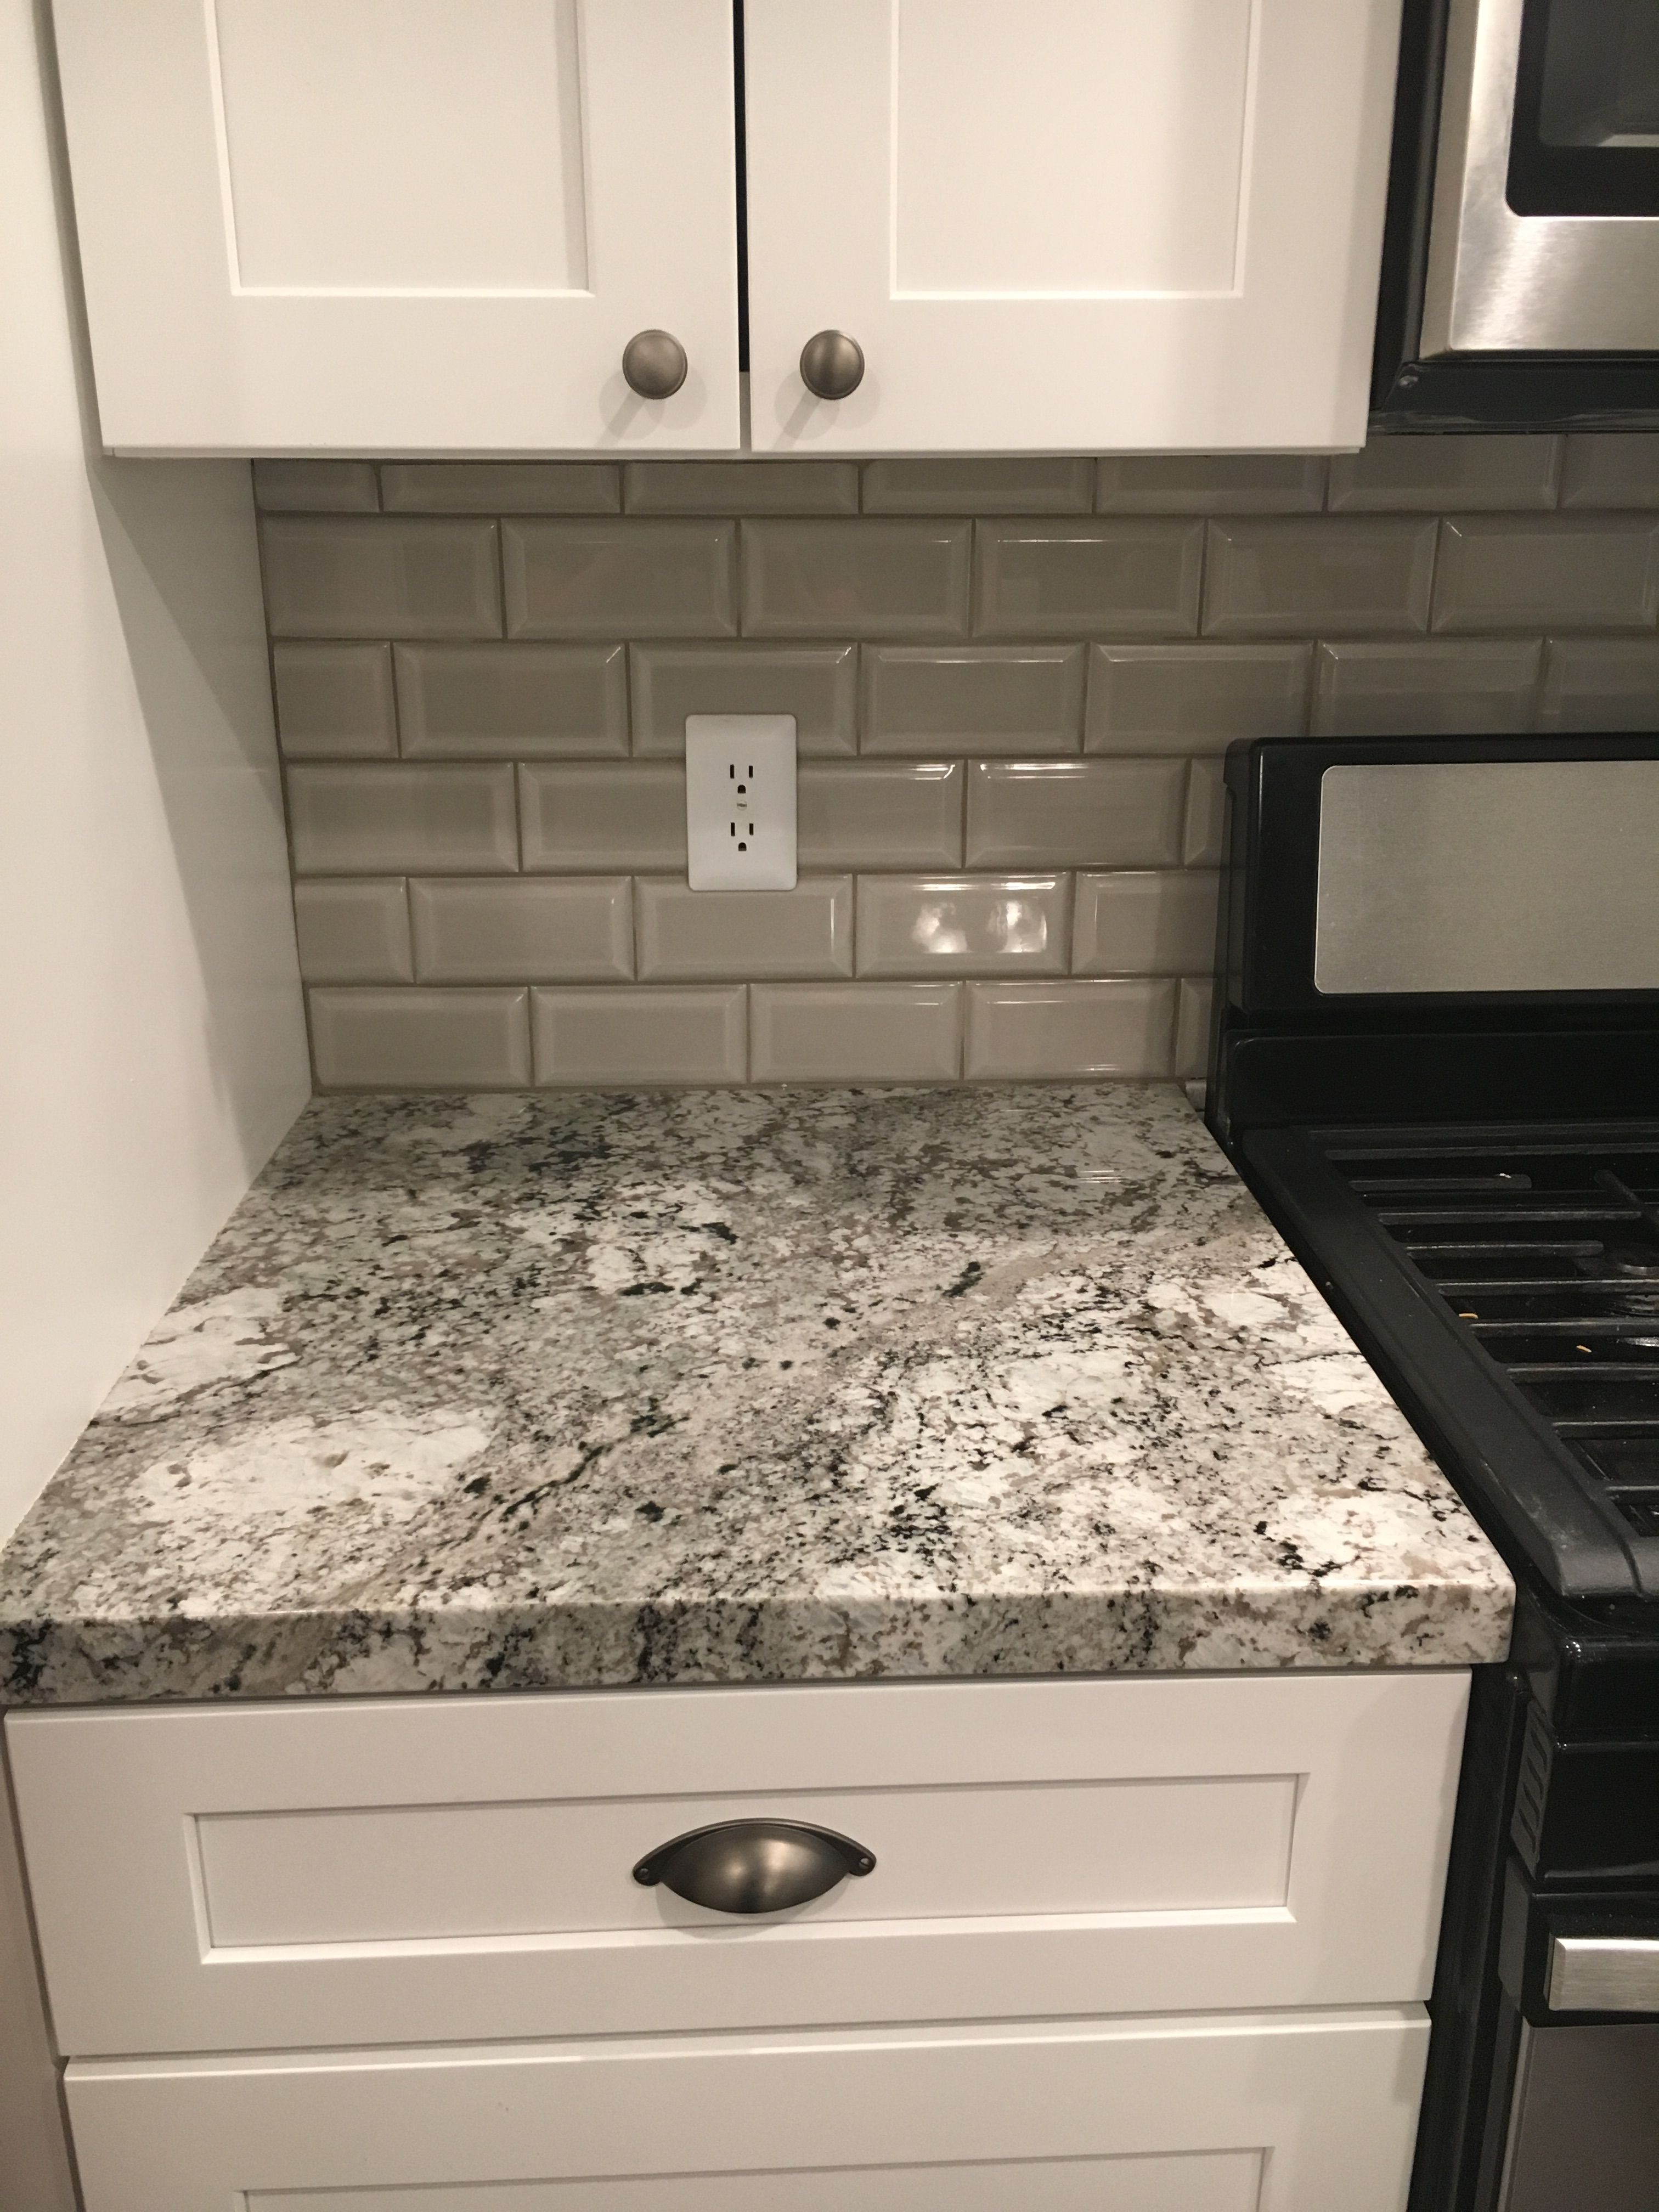 Arizona Bevel Ceramic Subway Tile In Pumice Kitchen Remodel White Granite White S Simple Kitchen Remodel Colonial Kitchen Remodel Kitchen Remodeling Projects